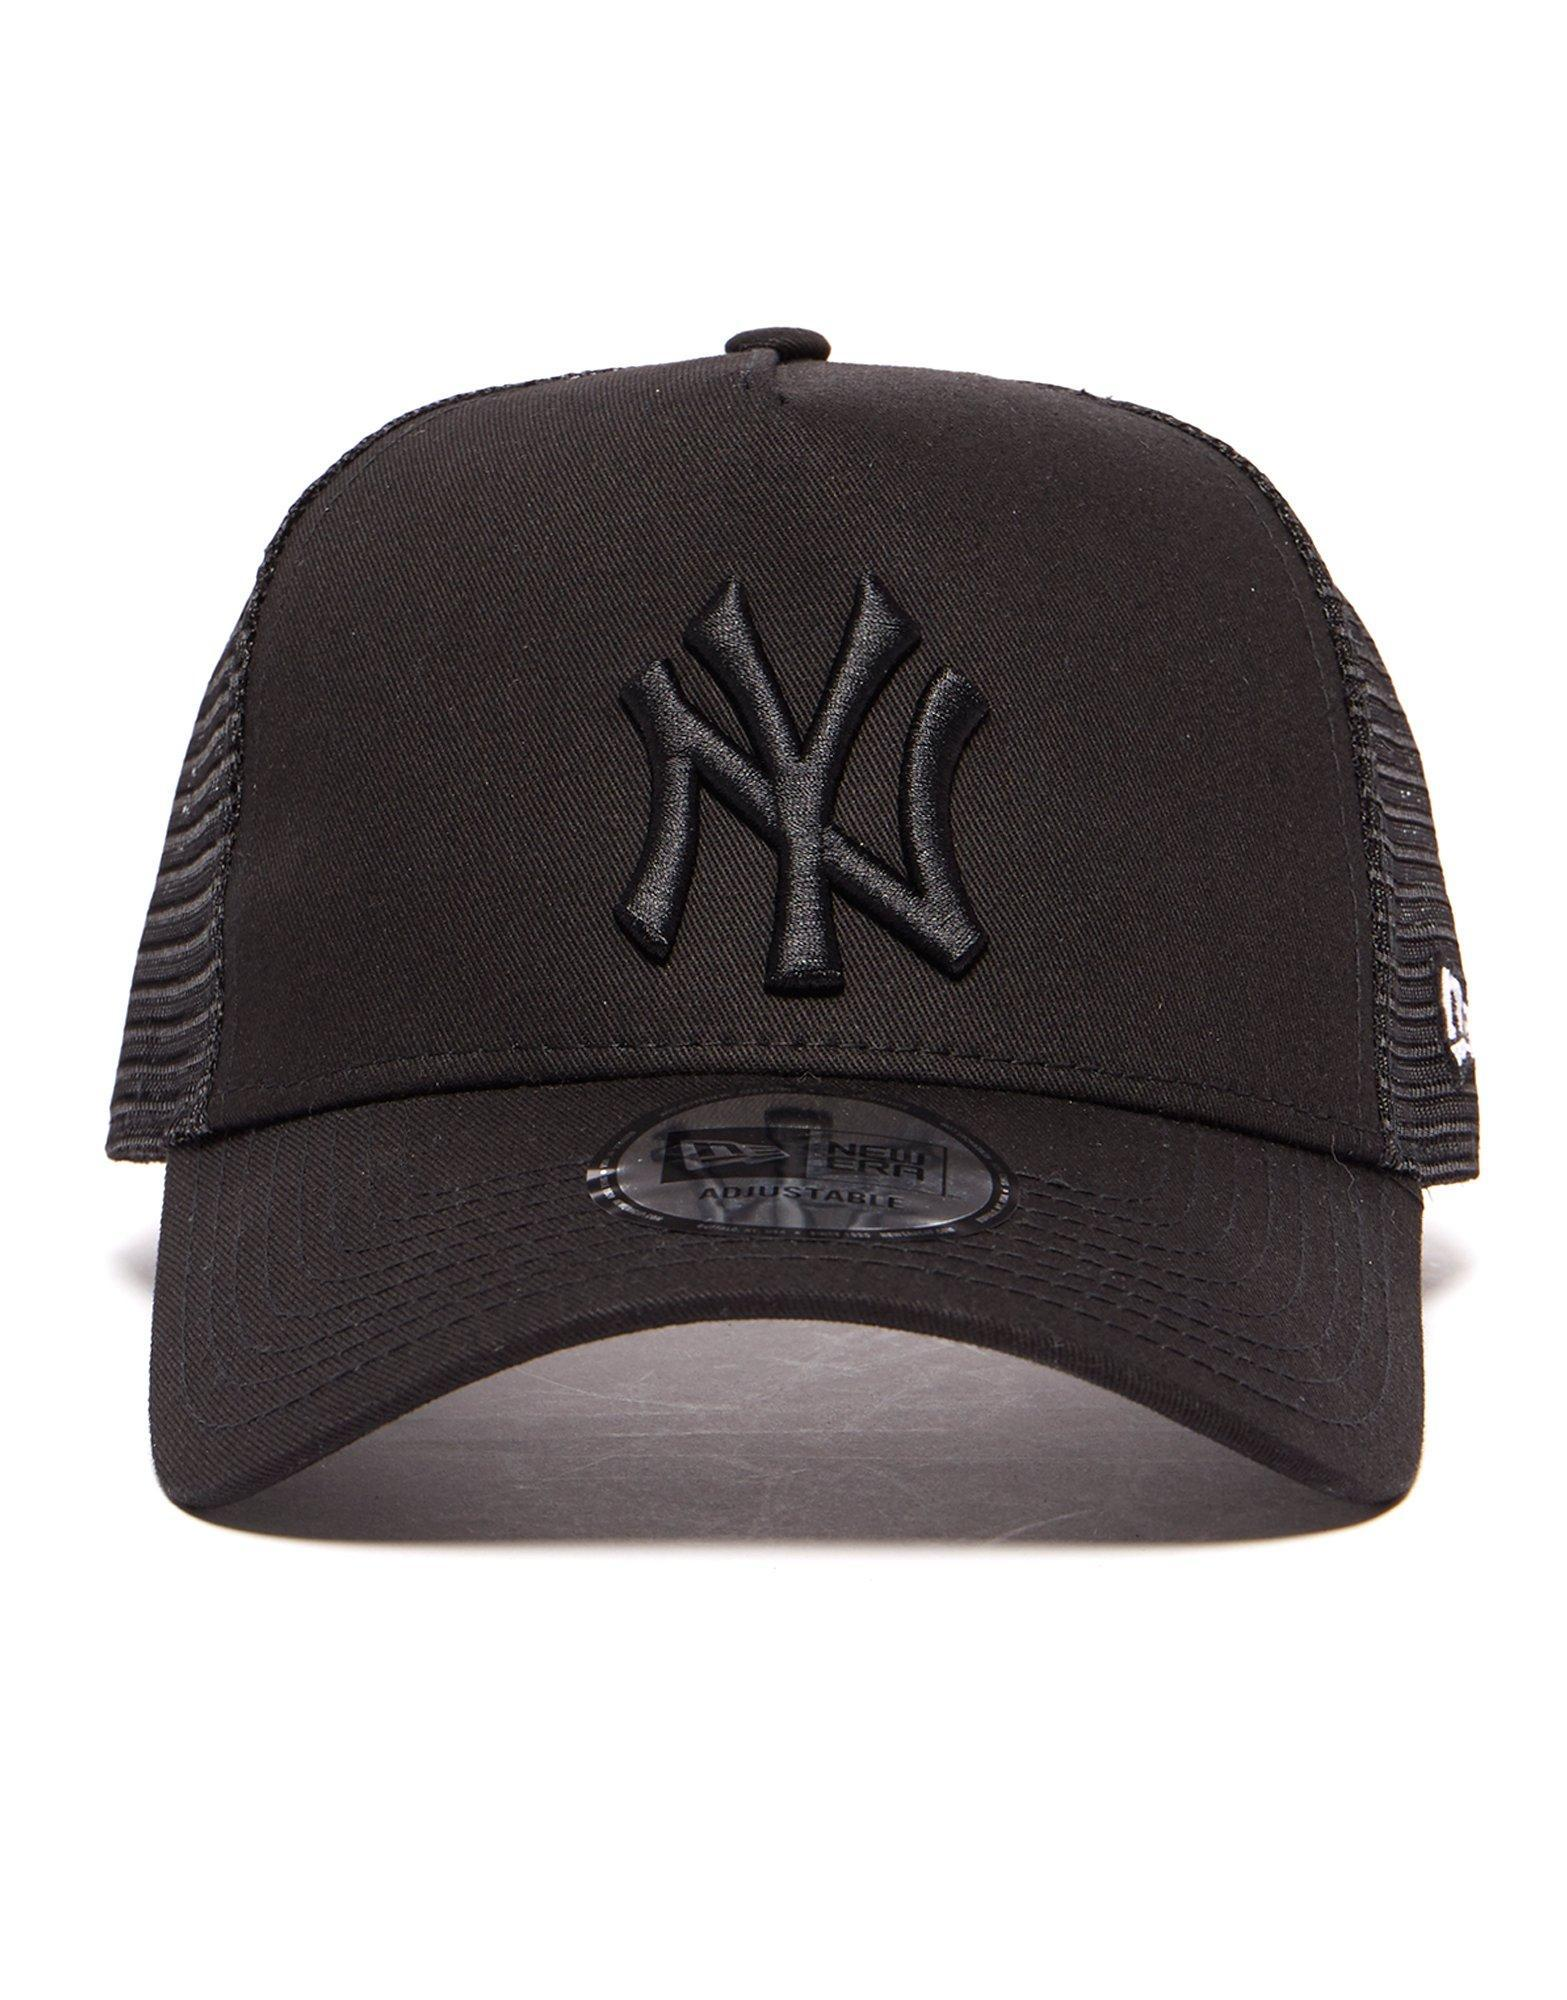 australia black and pink new york yankees hat f6eeb e4094 faa4135447d